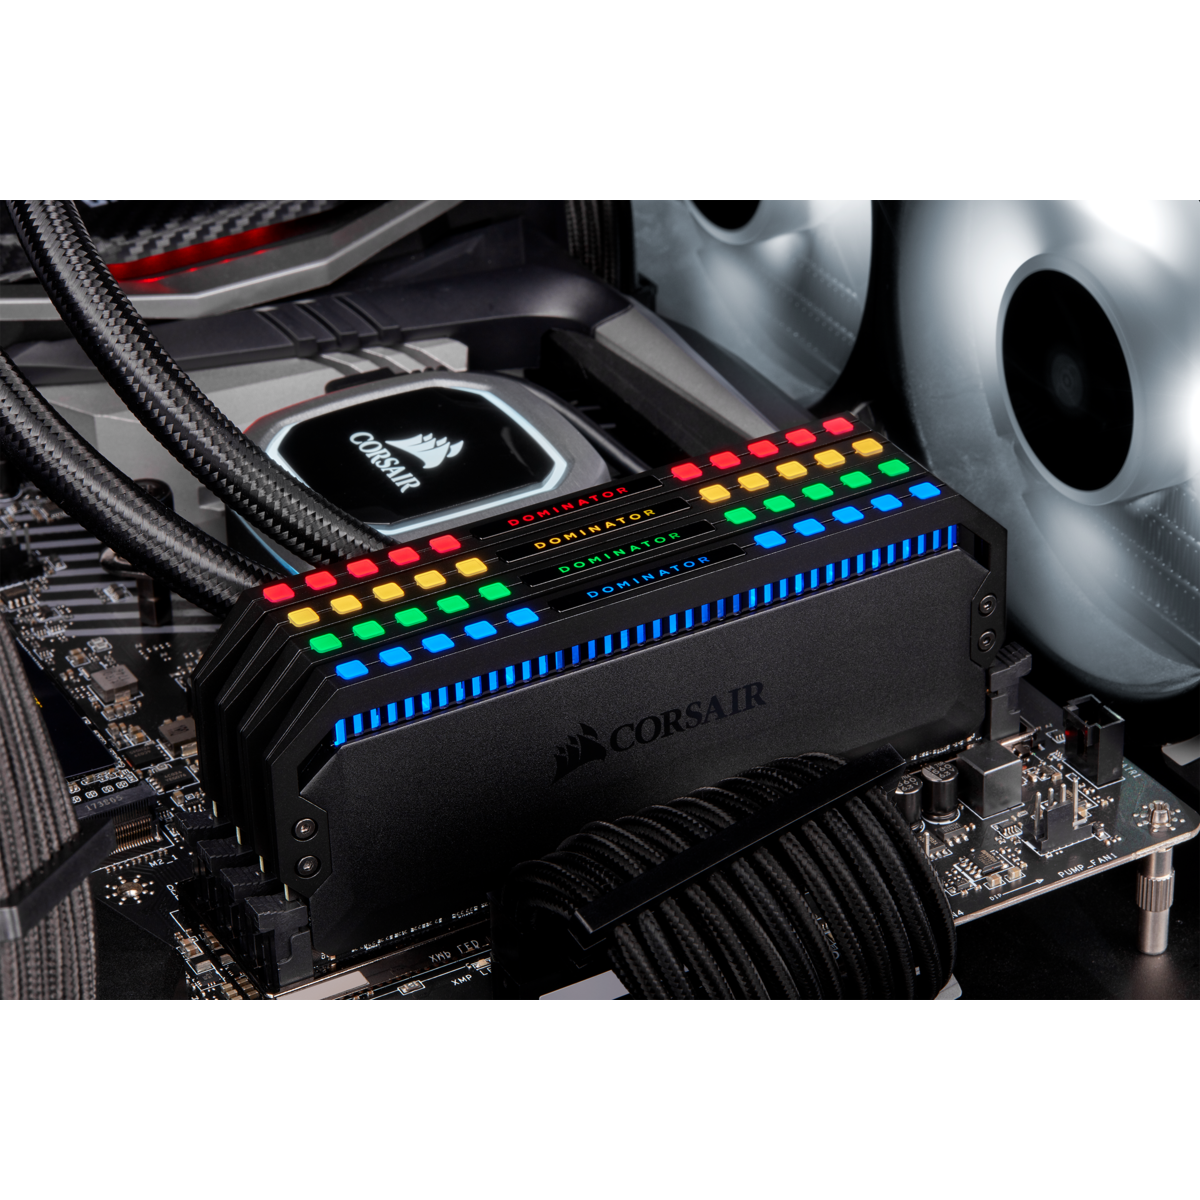 RAM Corsair Dominator Platinum RGB DDR4